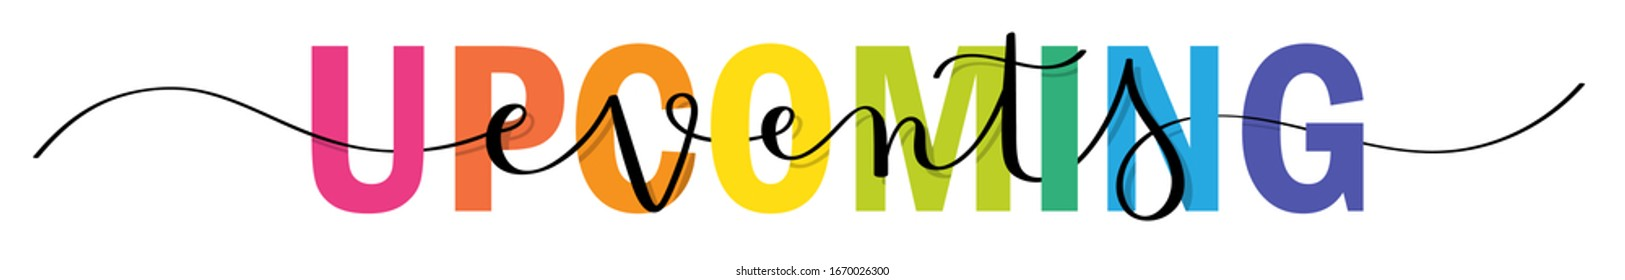 Upcoming Banner Images Stock Photos Vectors Shutterstock